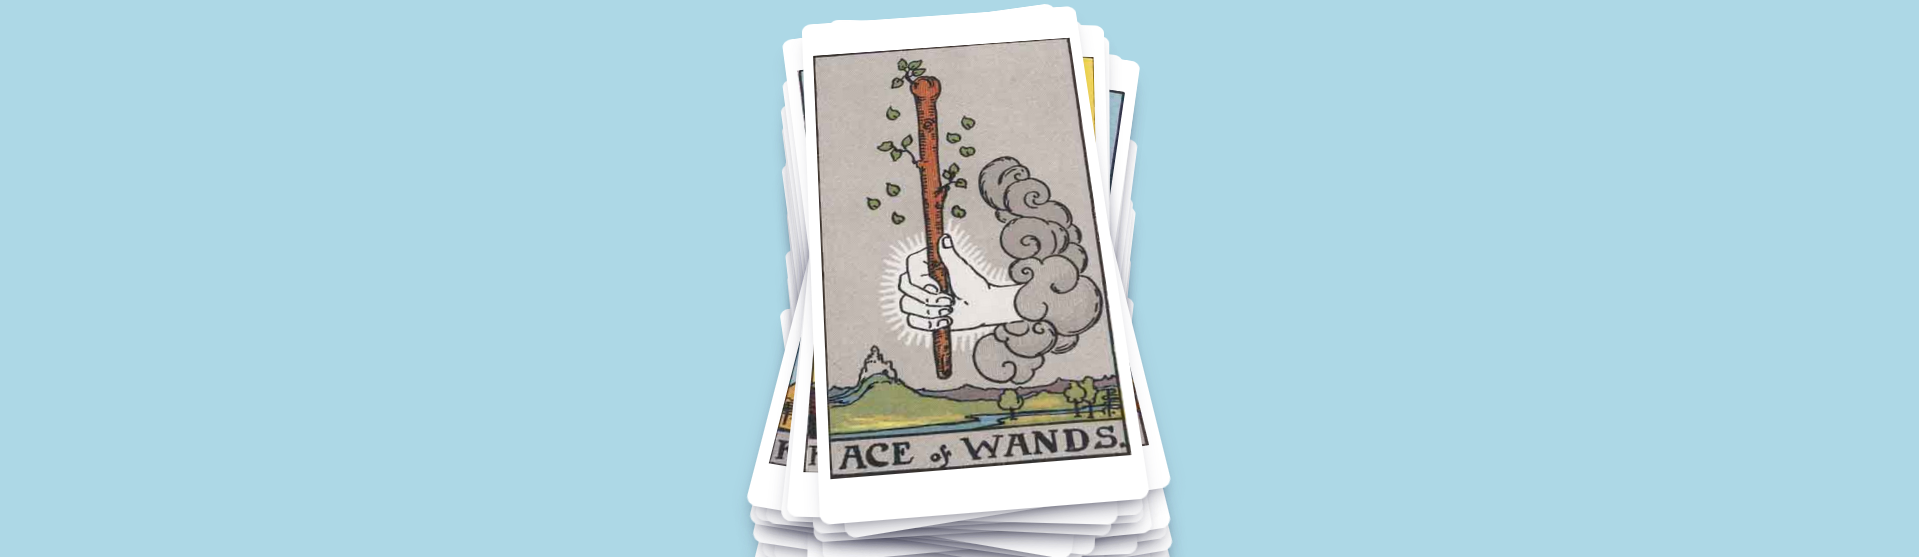 How To Make A Tarot Card Deck In React With Gestures